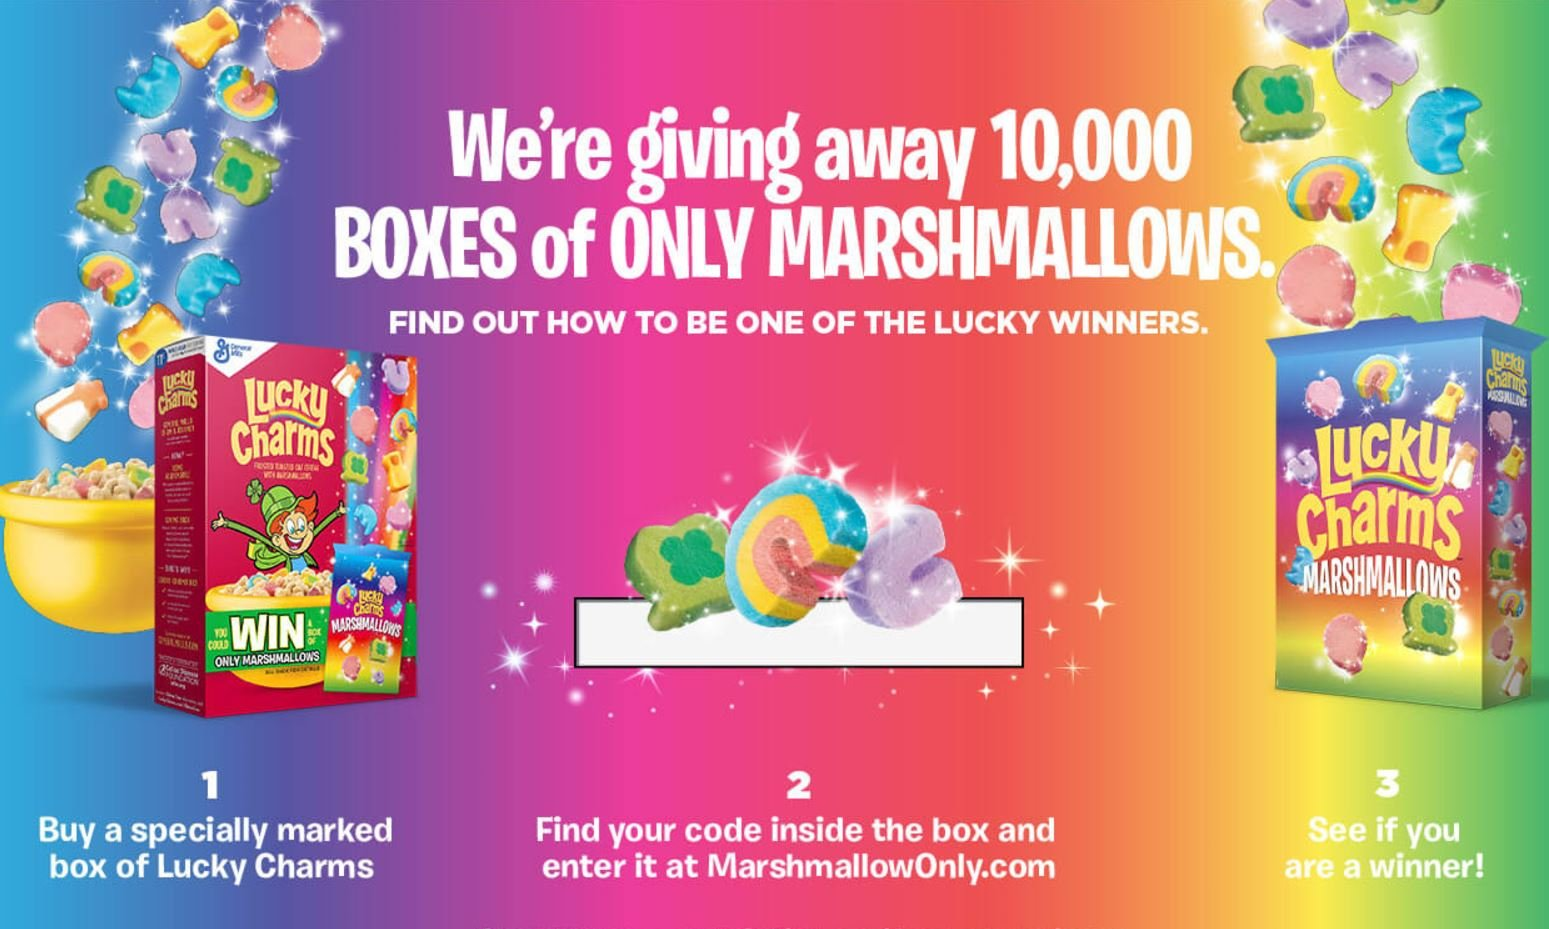 lucky charms brings back their quot marshmallow only quot contest